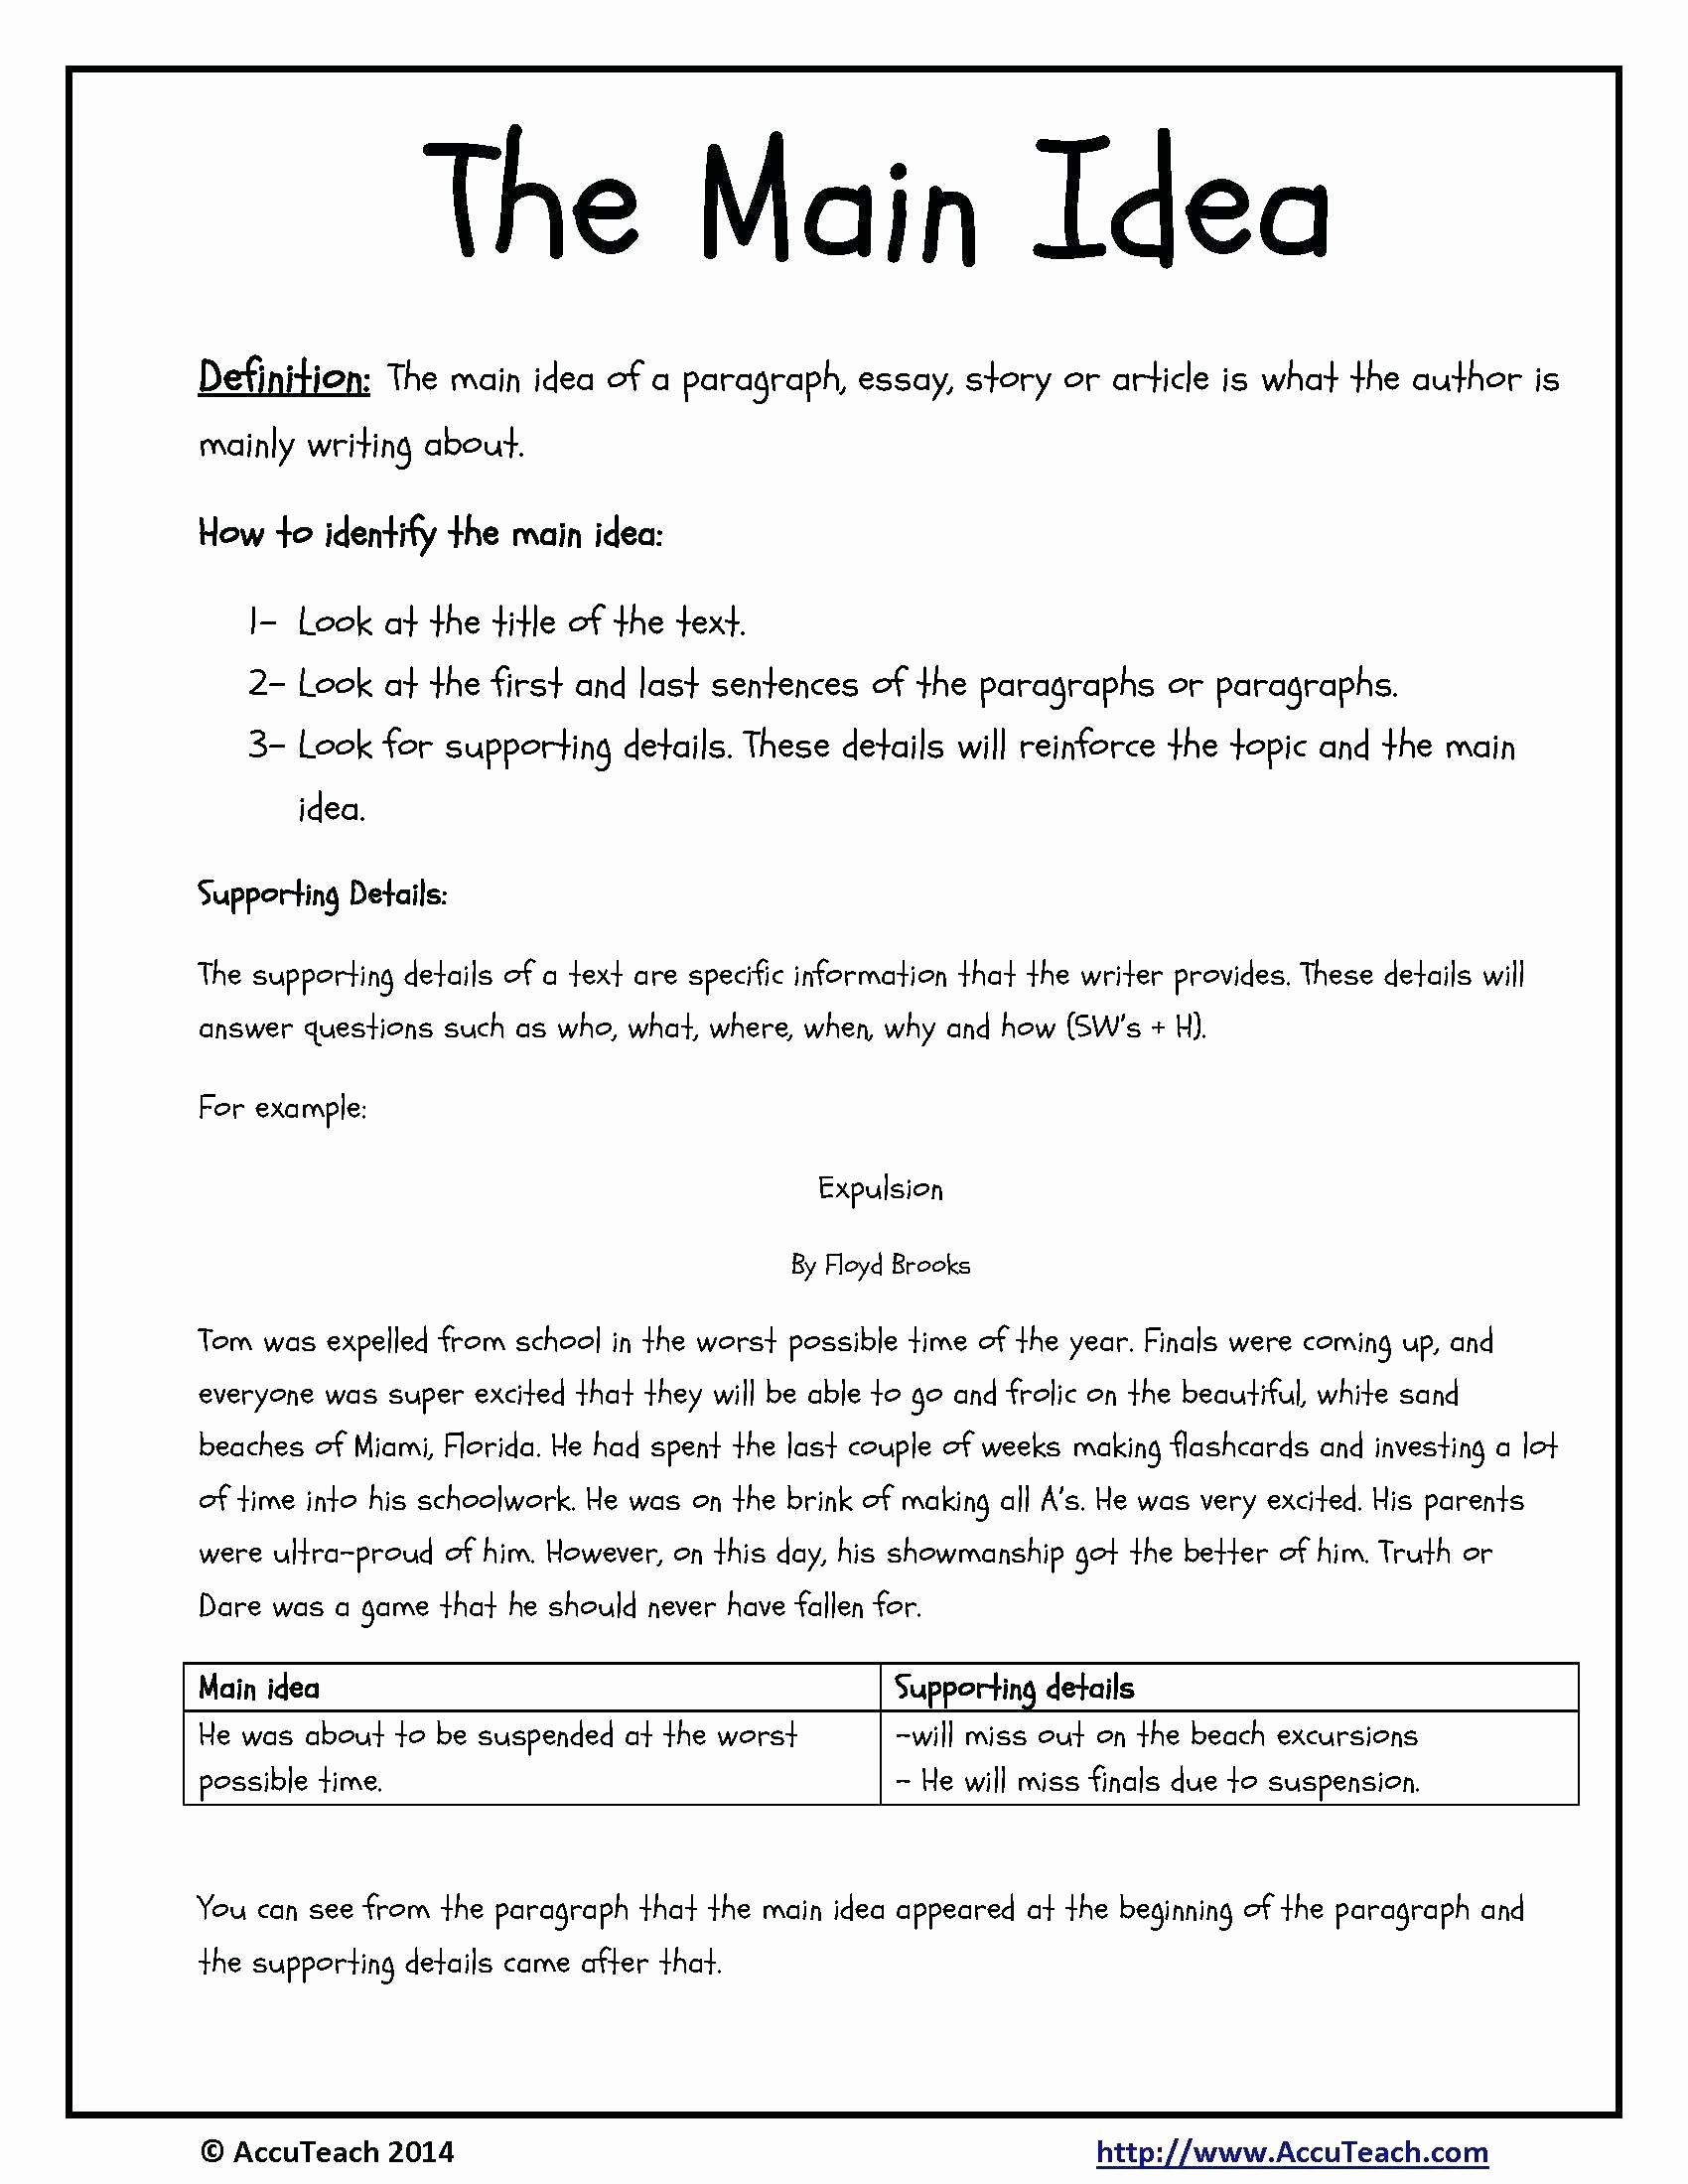 Free Printable Main Idea Worksheets Unique 10 Cute Main Idea Worksheets Third Grade 2021